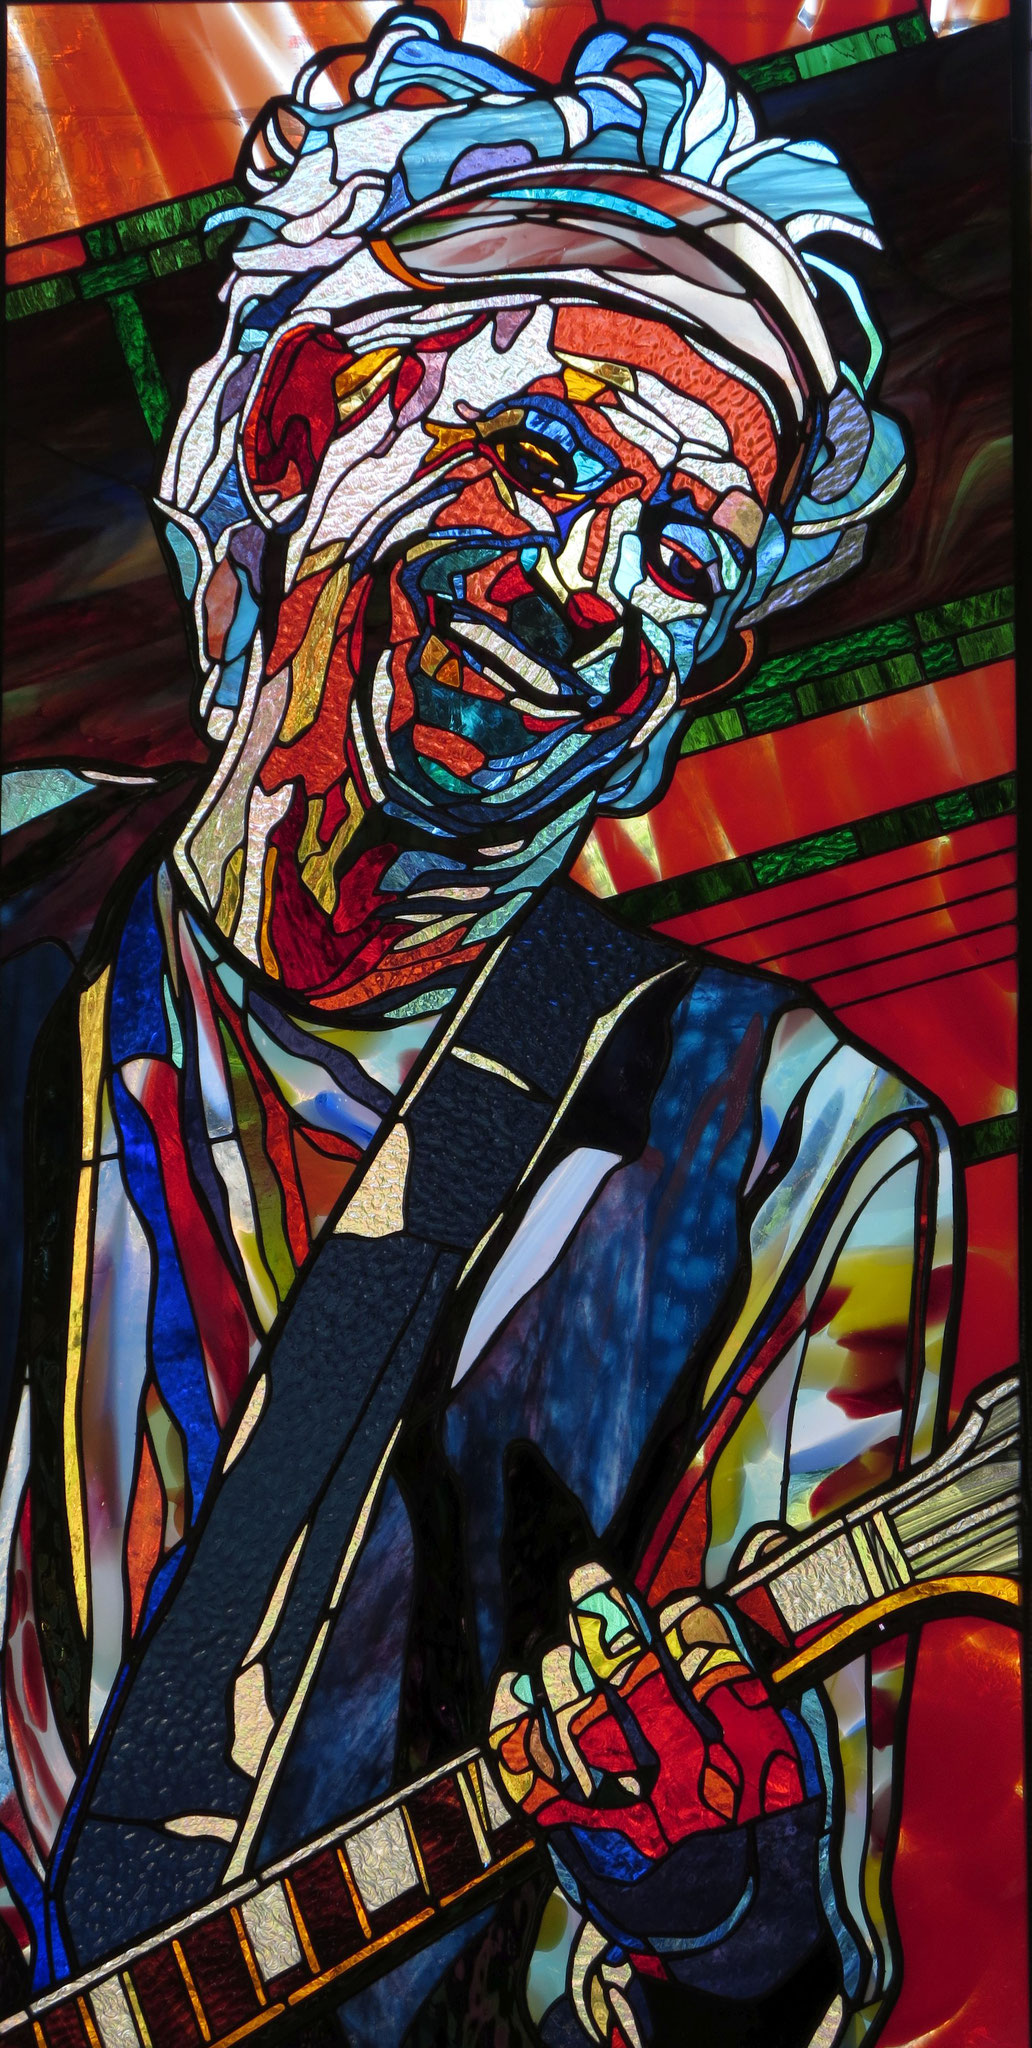 KEITH  23 by 48 inches stained glass, photo by Hadyn Butler